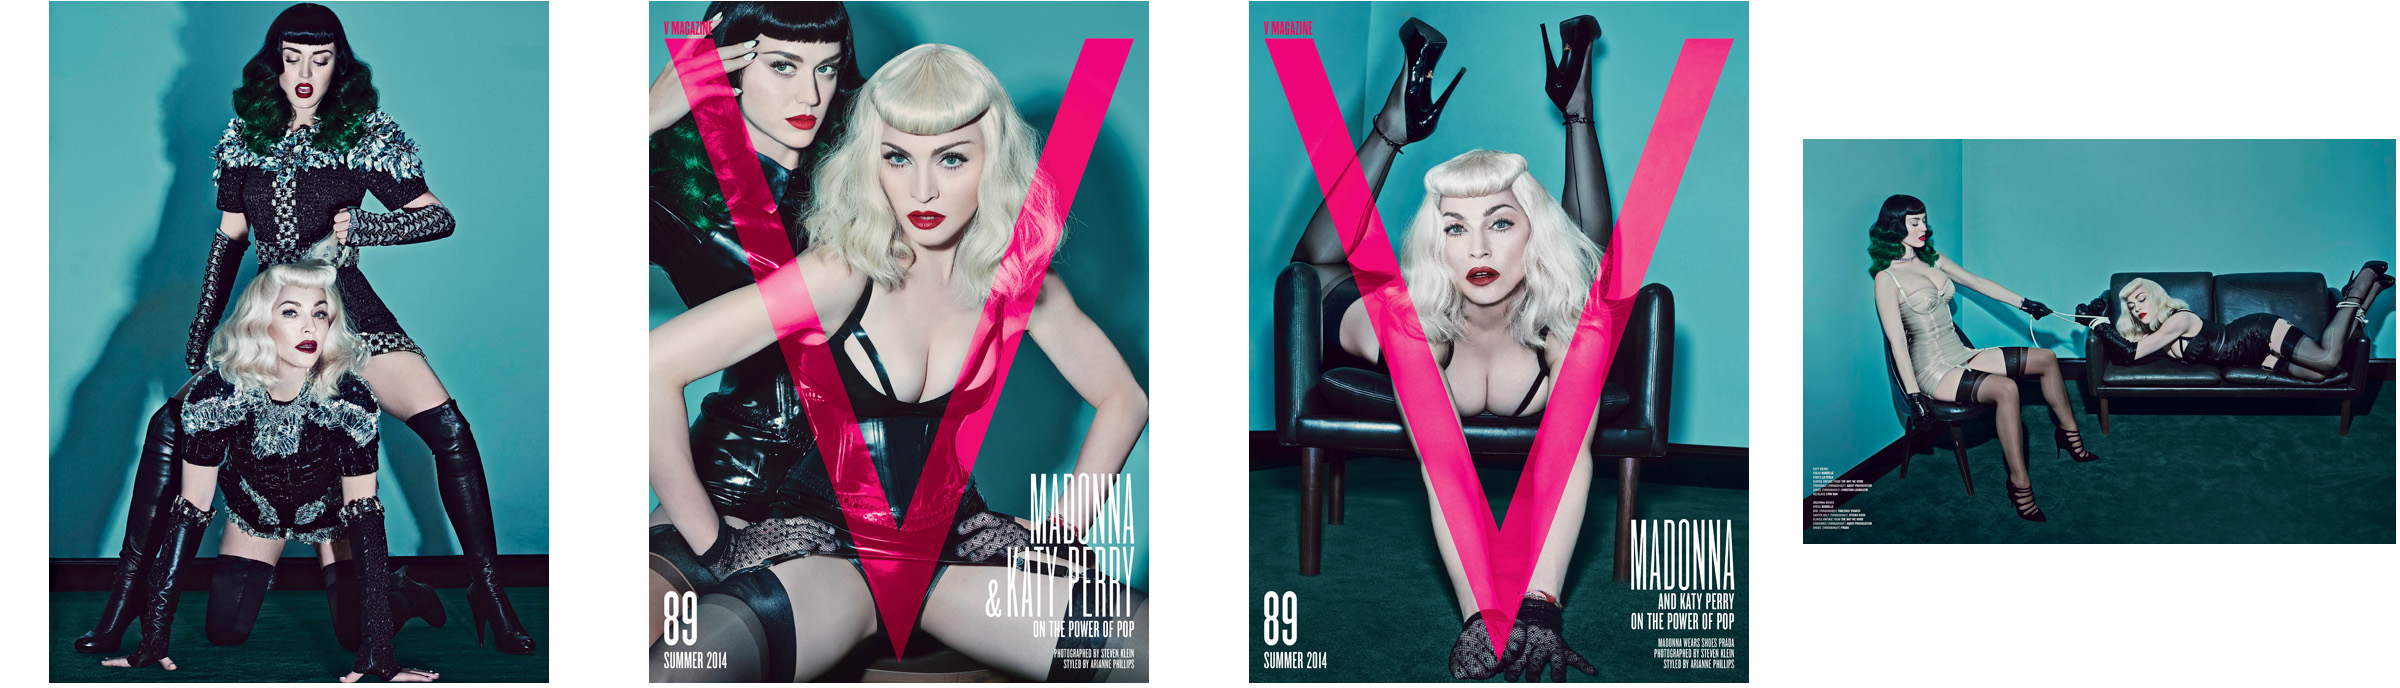 Madonna & Katy Perry by Steven Klein for V Magazine-photoshoots (Download)